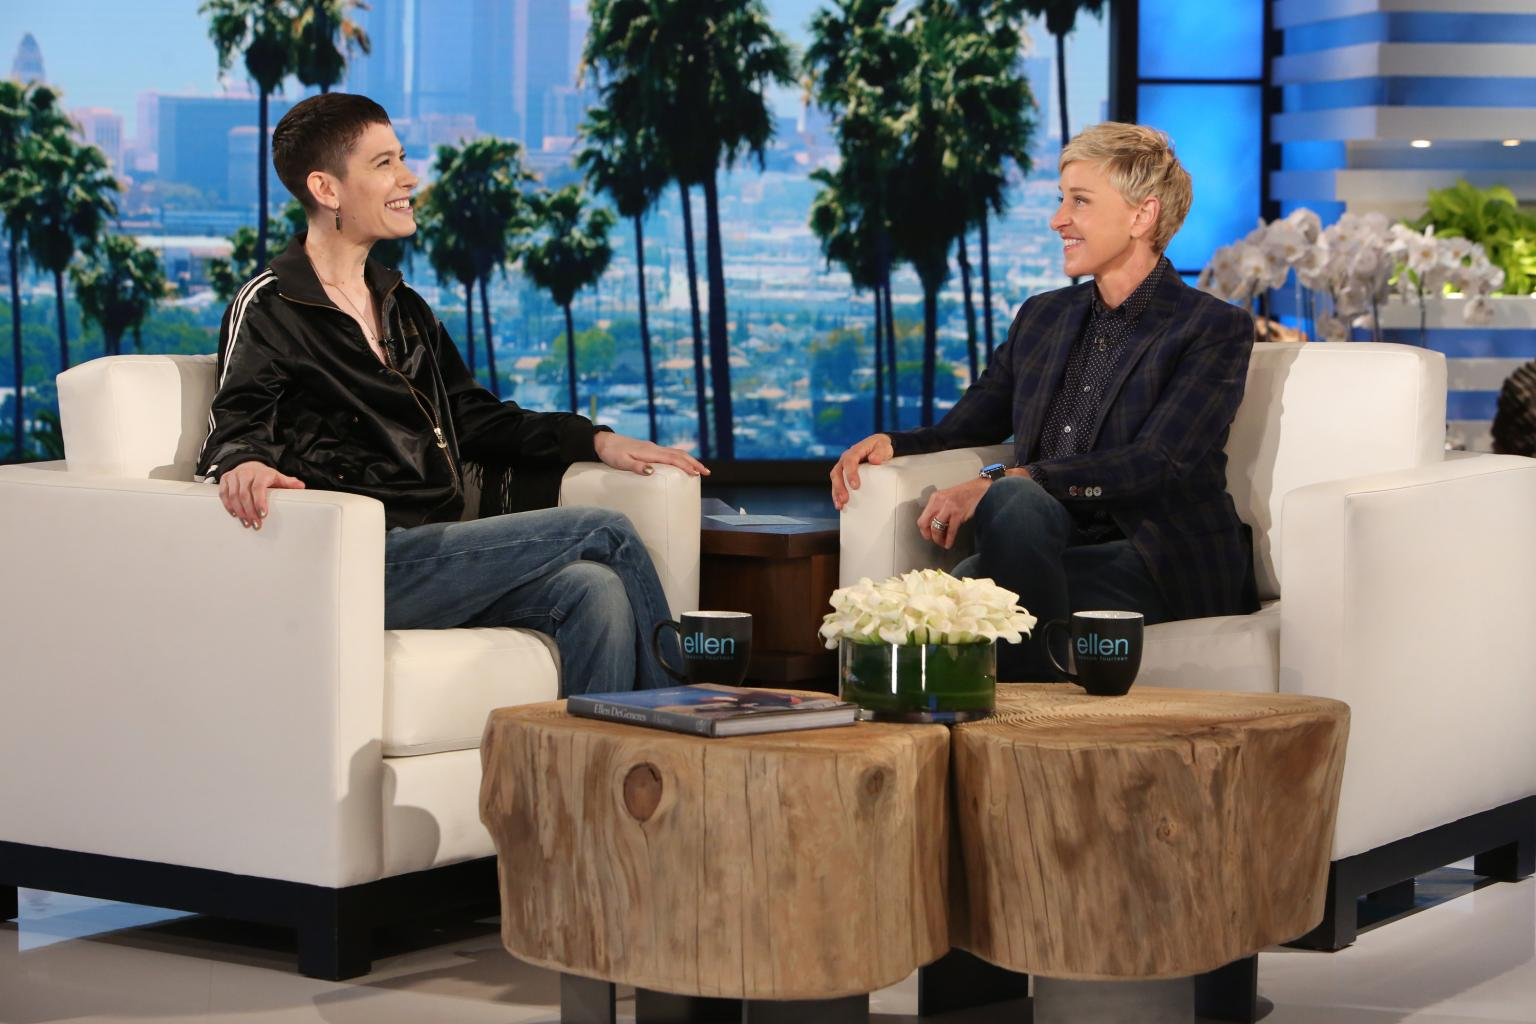 'Billions' Star Asia Kate Dillon On Being First Non-Binary Gender Actor On A Mainstream Show